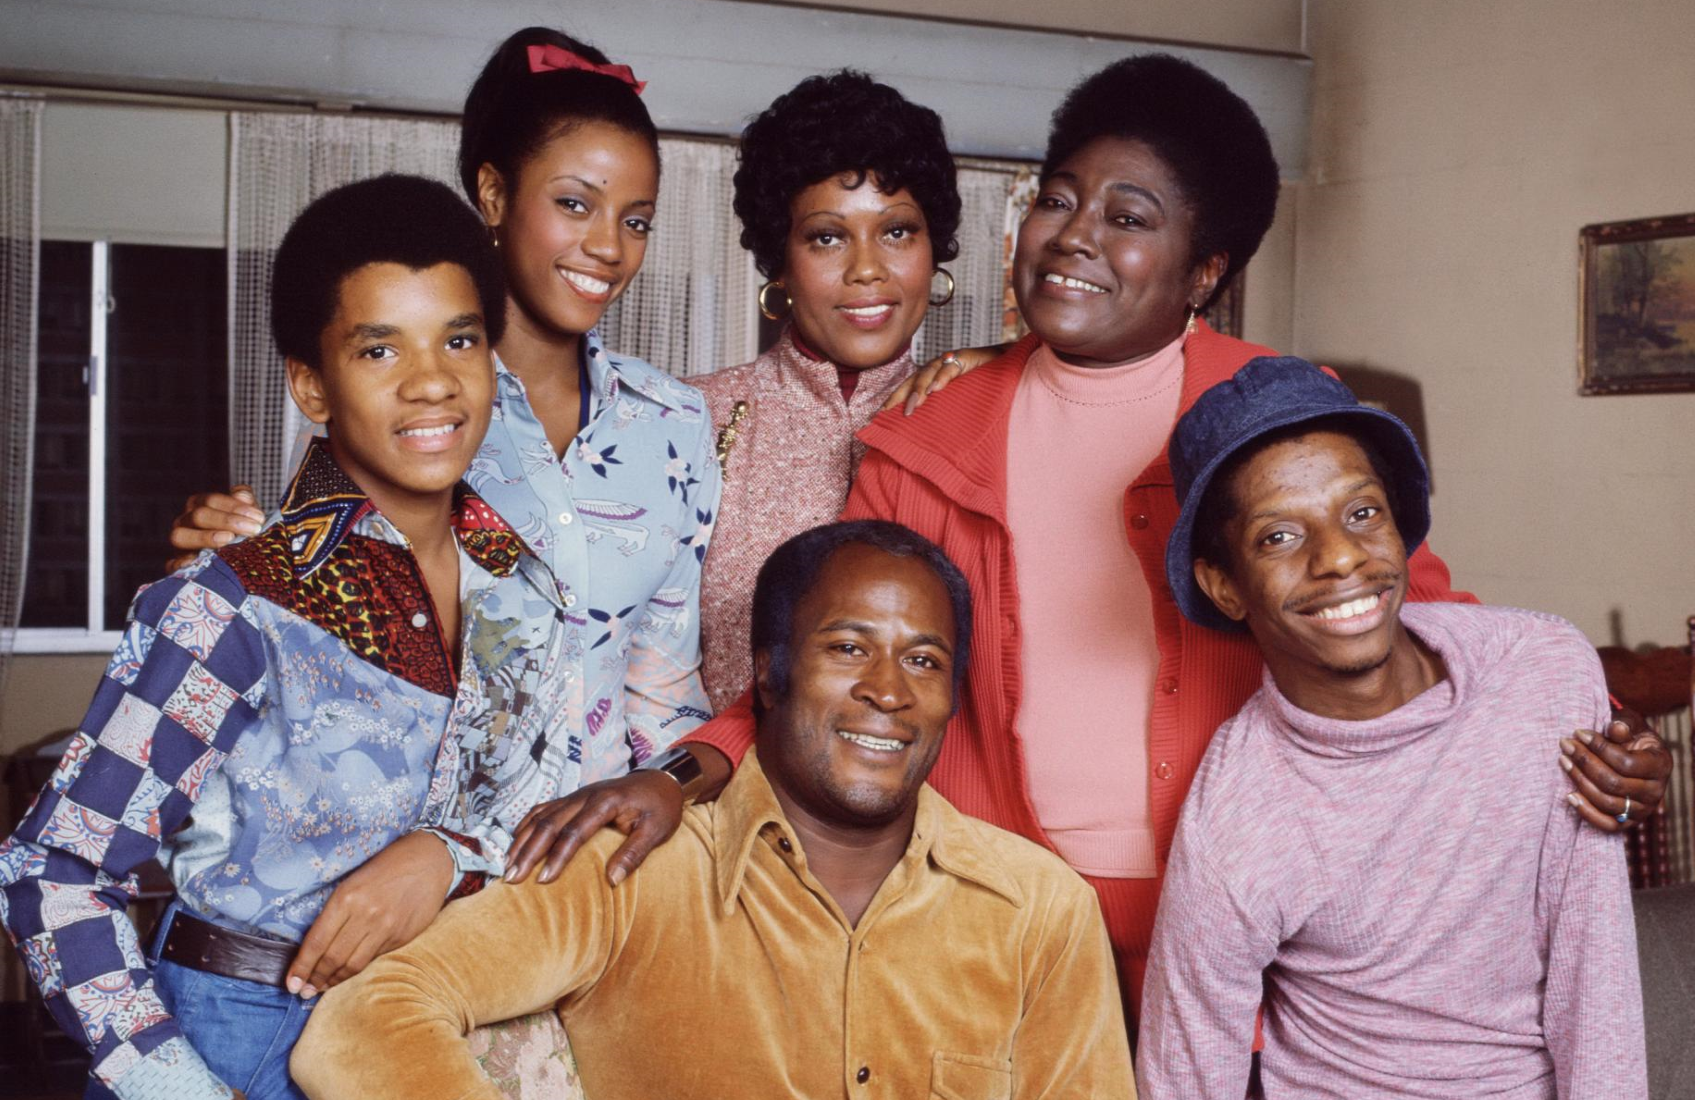 The original cast of Good Times: Ralph Carter, Bern Nadette Stanis, John Amos  Ja'net DuBois, Esther Rolle and Jimmie Walker. (CBS)